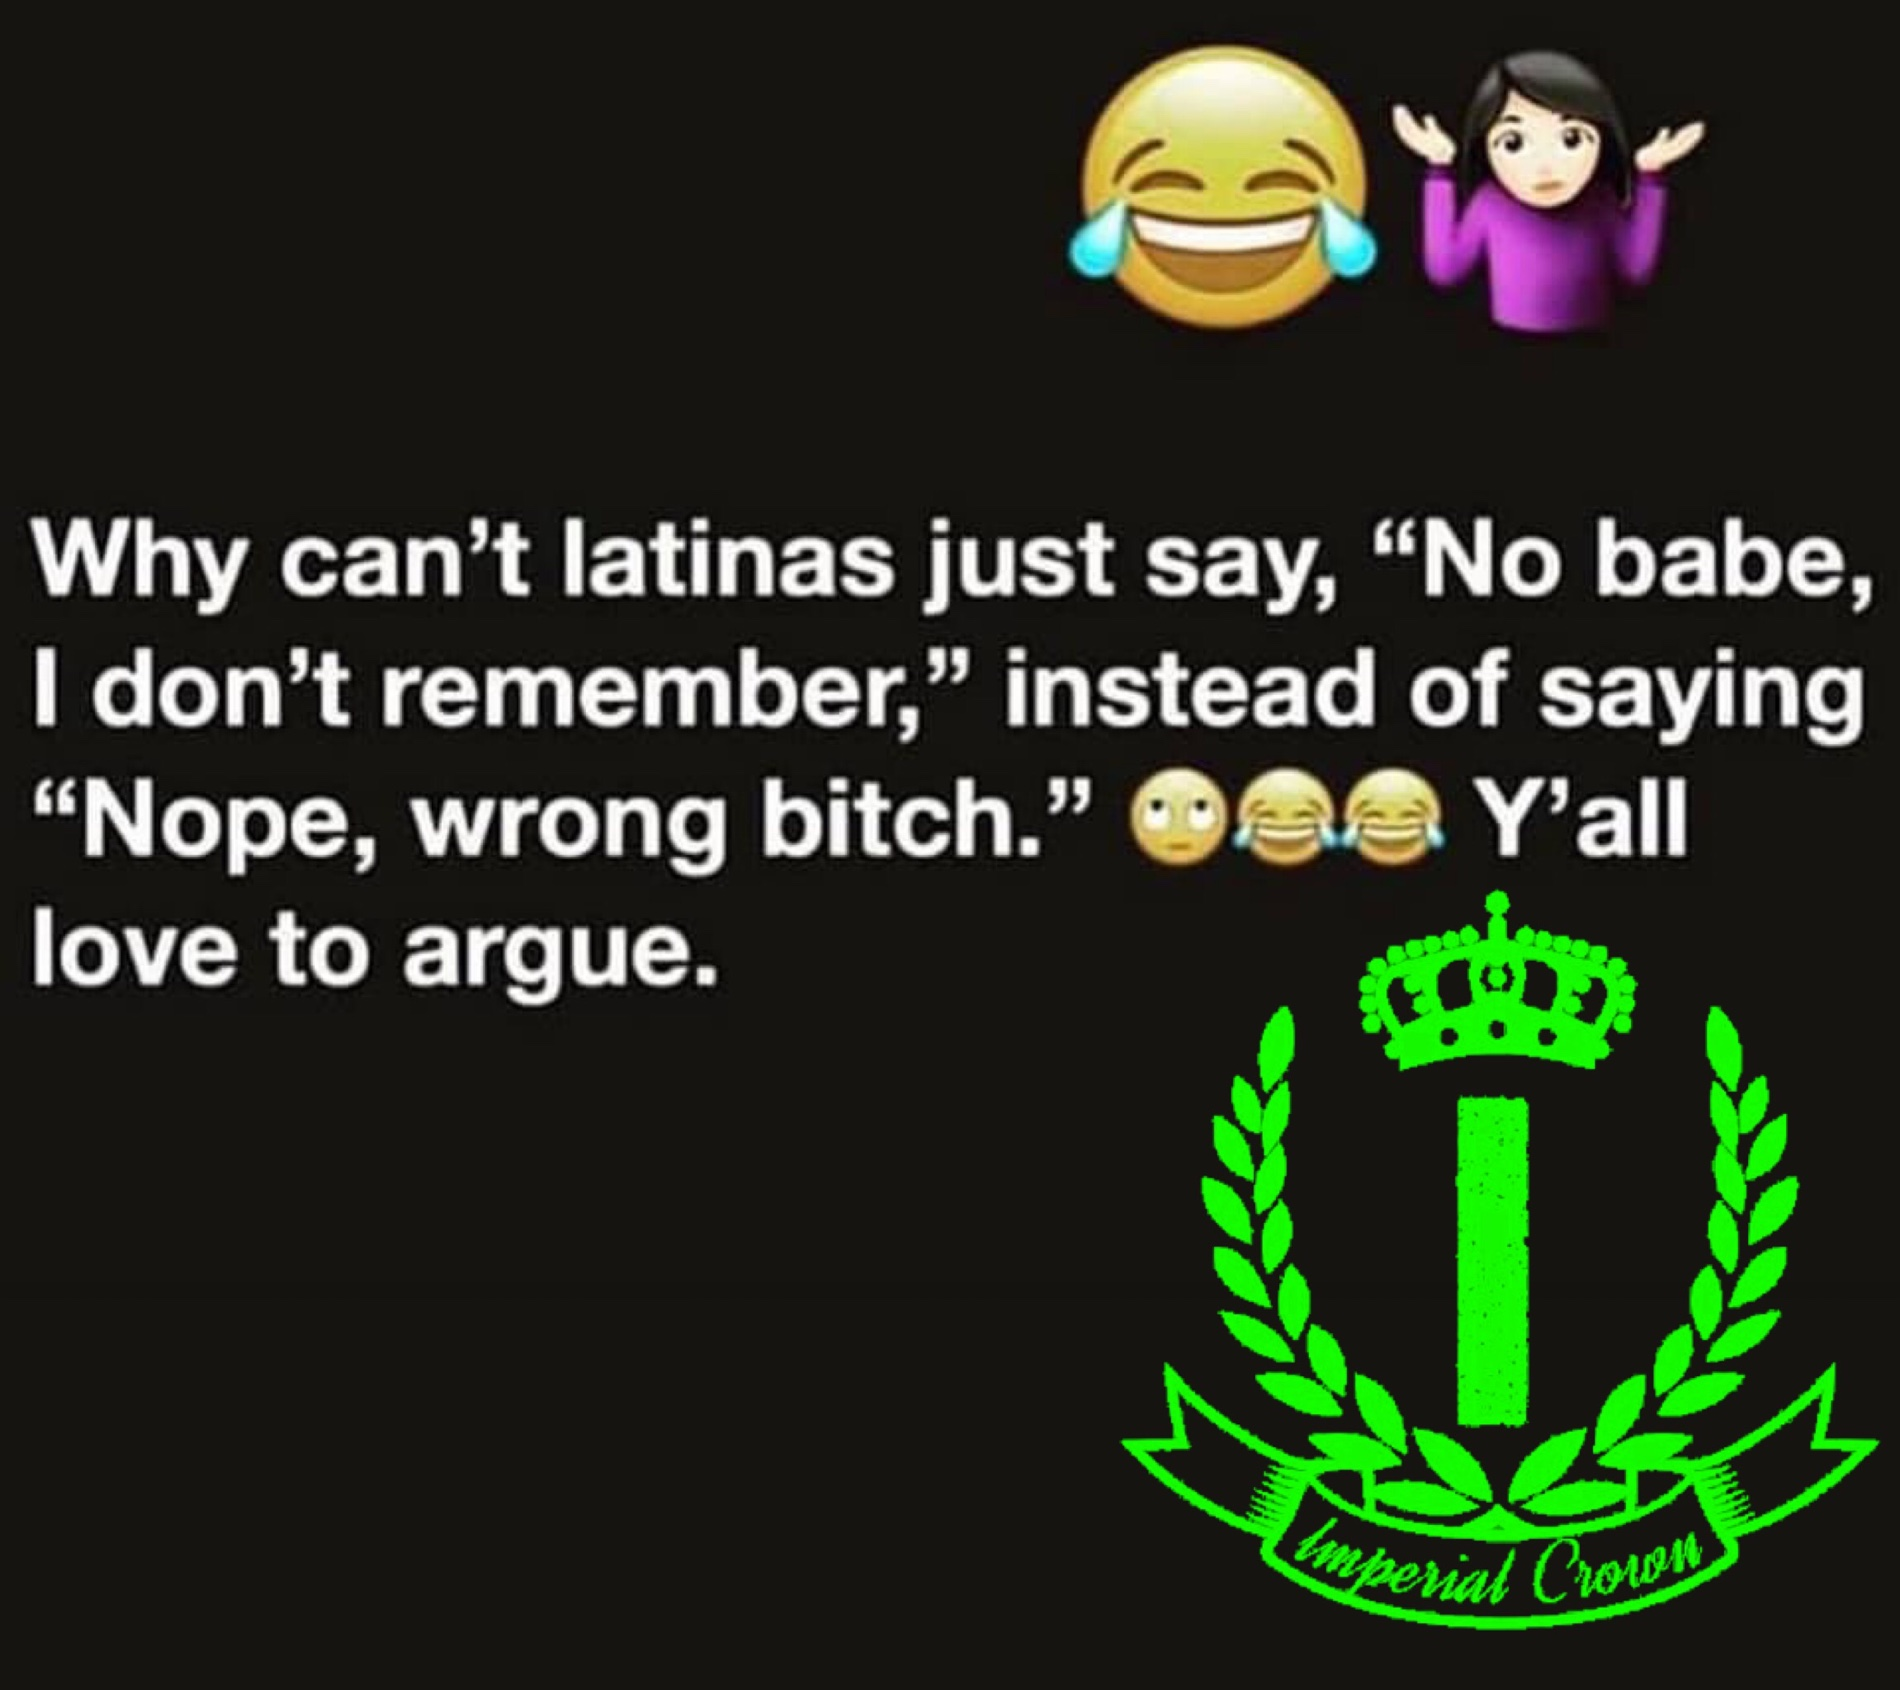 Why can't latinas